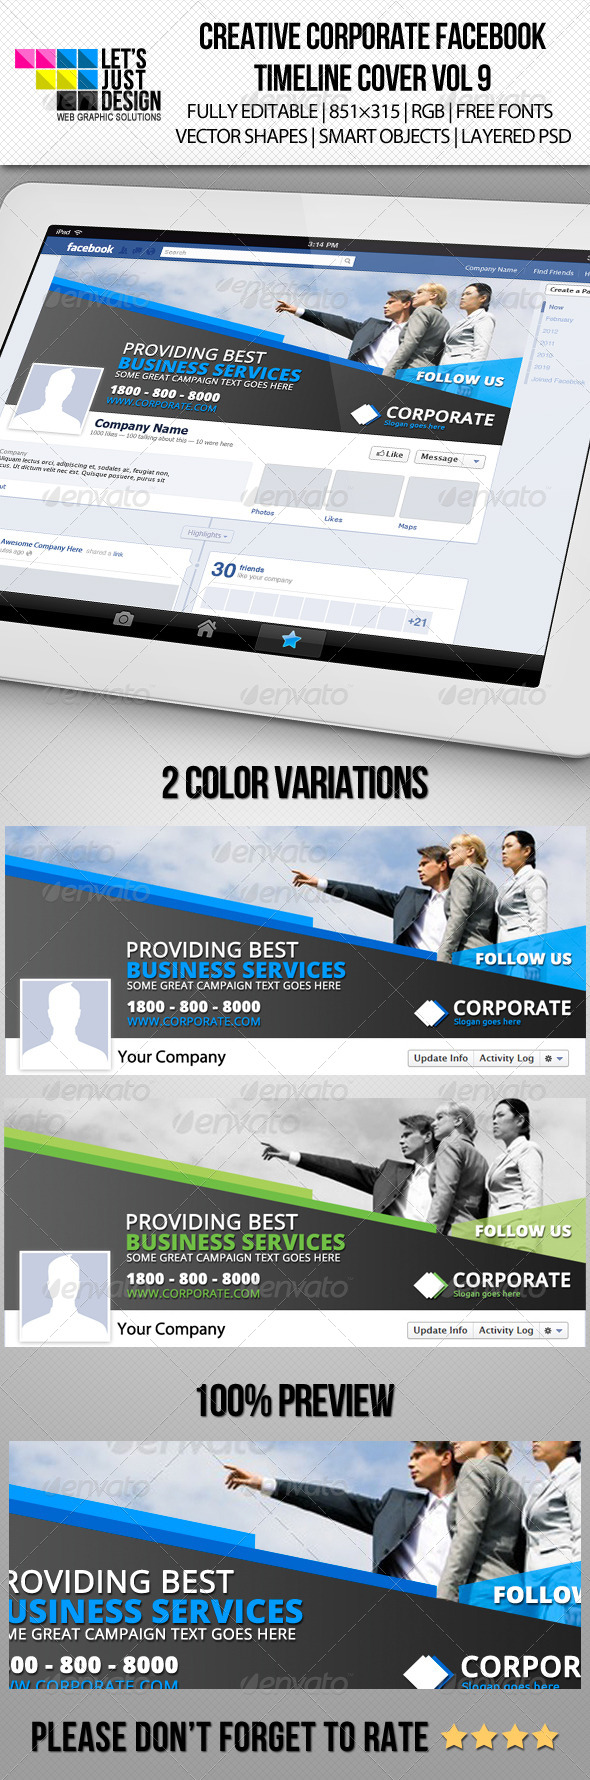 GraphicRiver Creative Corporate Facebook Timeline Cover Vol 9 5885378